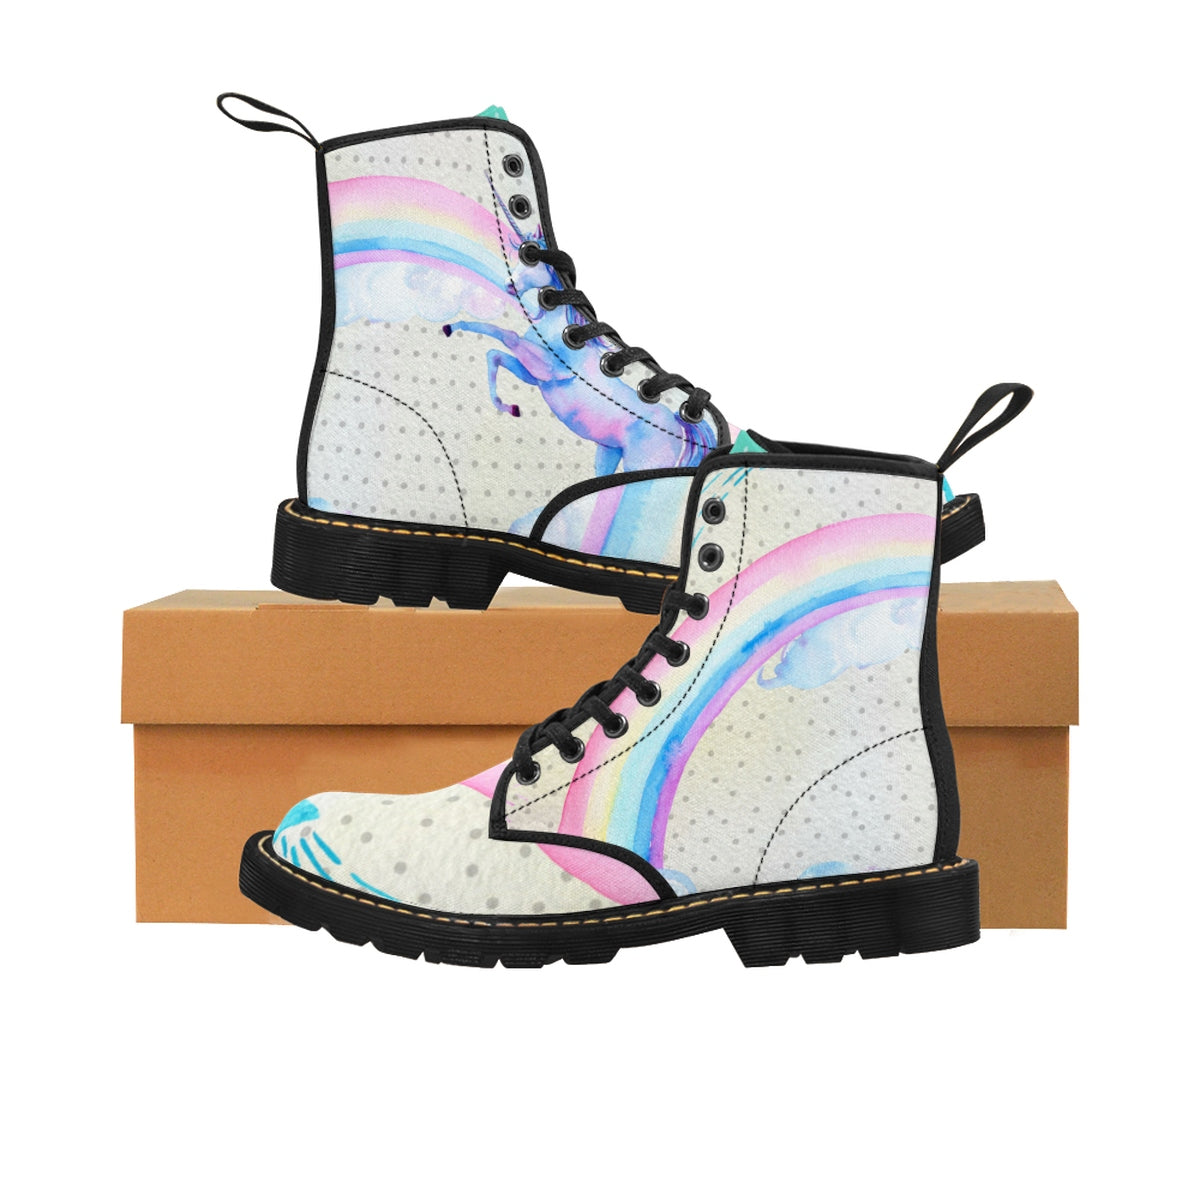 Dare to Dream Polka Dot Unicorn Kids' Martin Boots Shoes - Polka Dotted All The Things Boutique